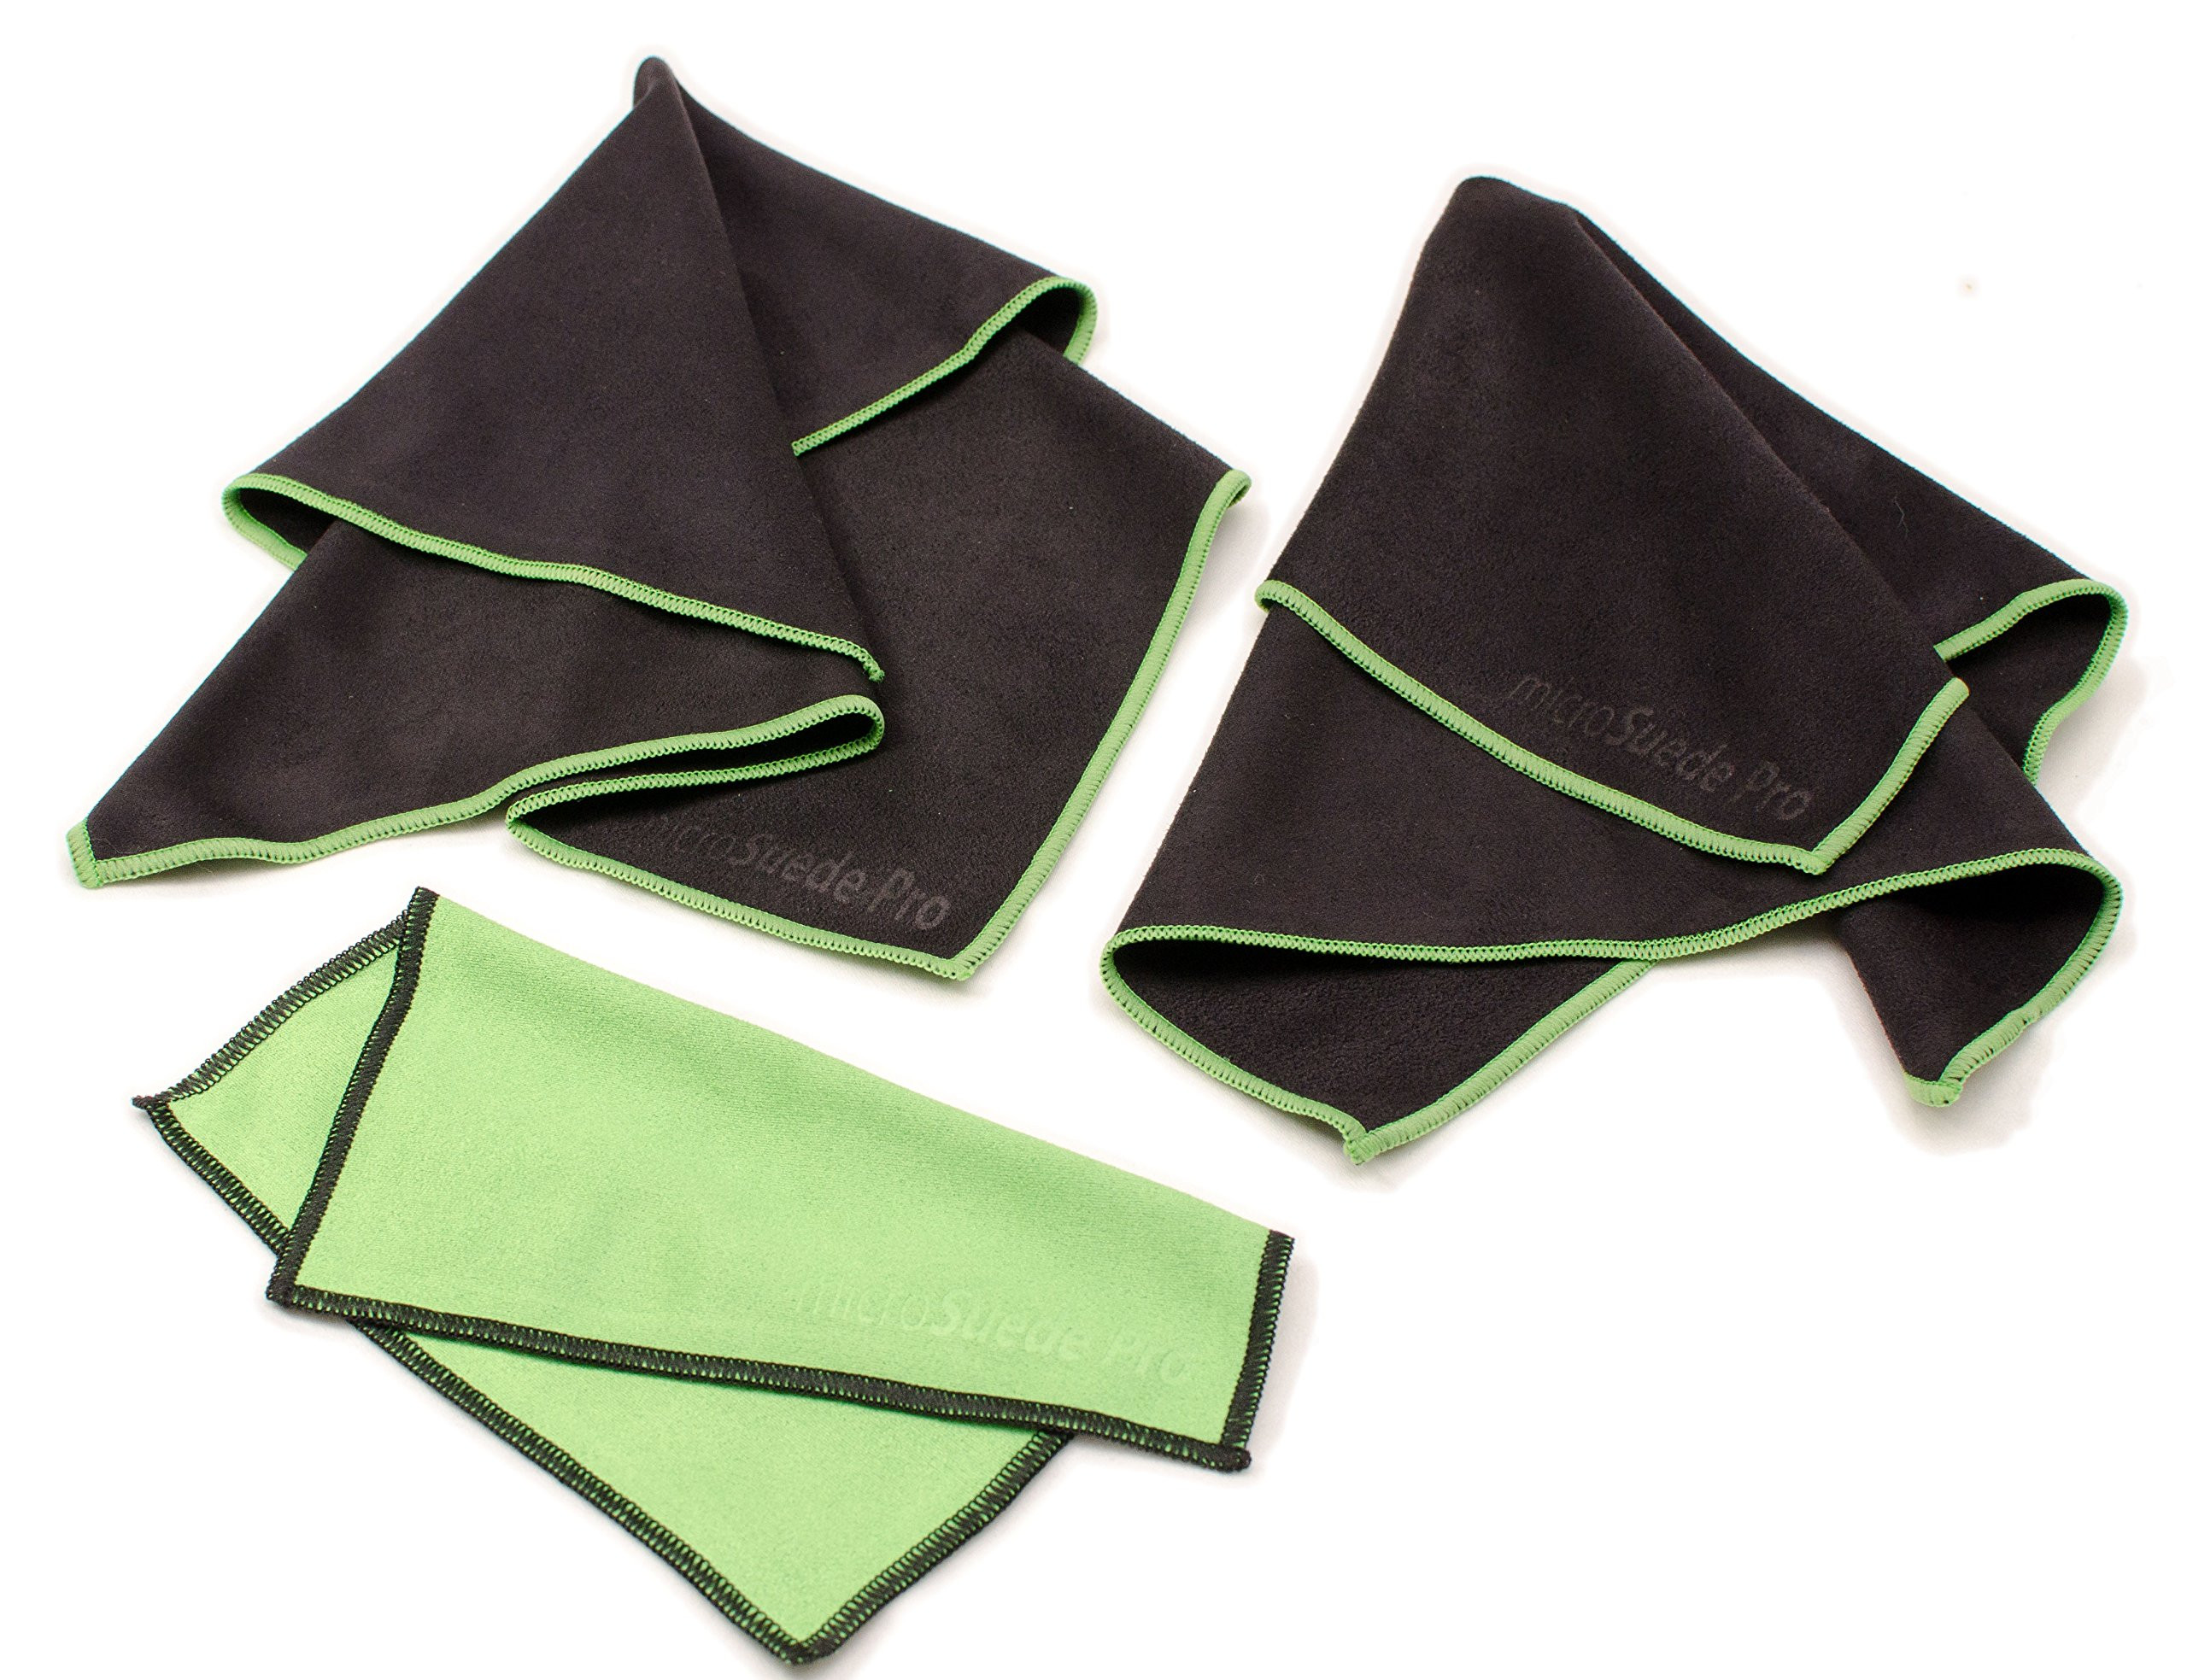 (Large 3-pack) Premium Microfiber Cleaning Cloth For Glass, Camera Lenses, Phones, Tablets, Flat Screen TVs (2 Large Black, 1 Small Green) - 12''x12'' by microSuede Pro